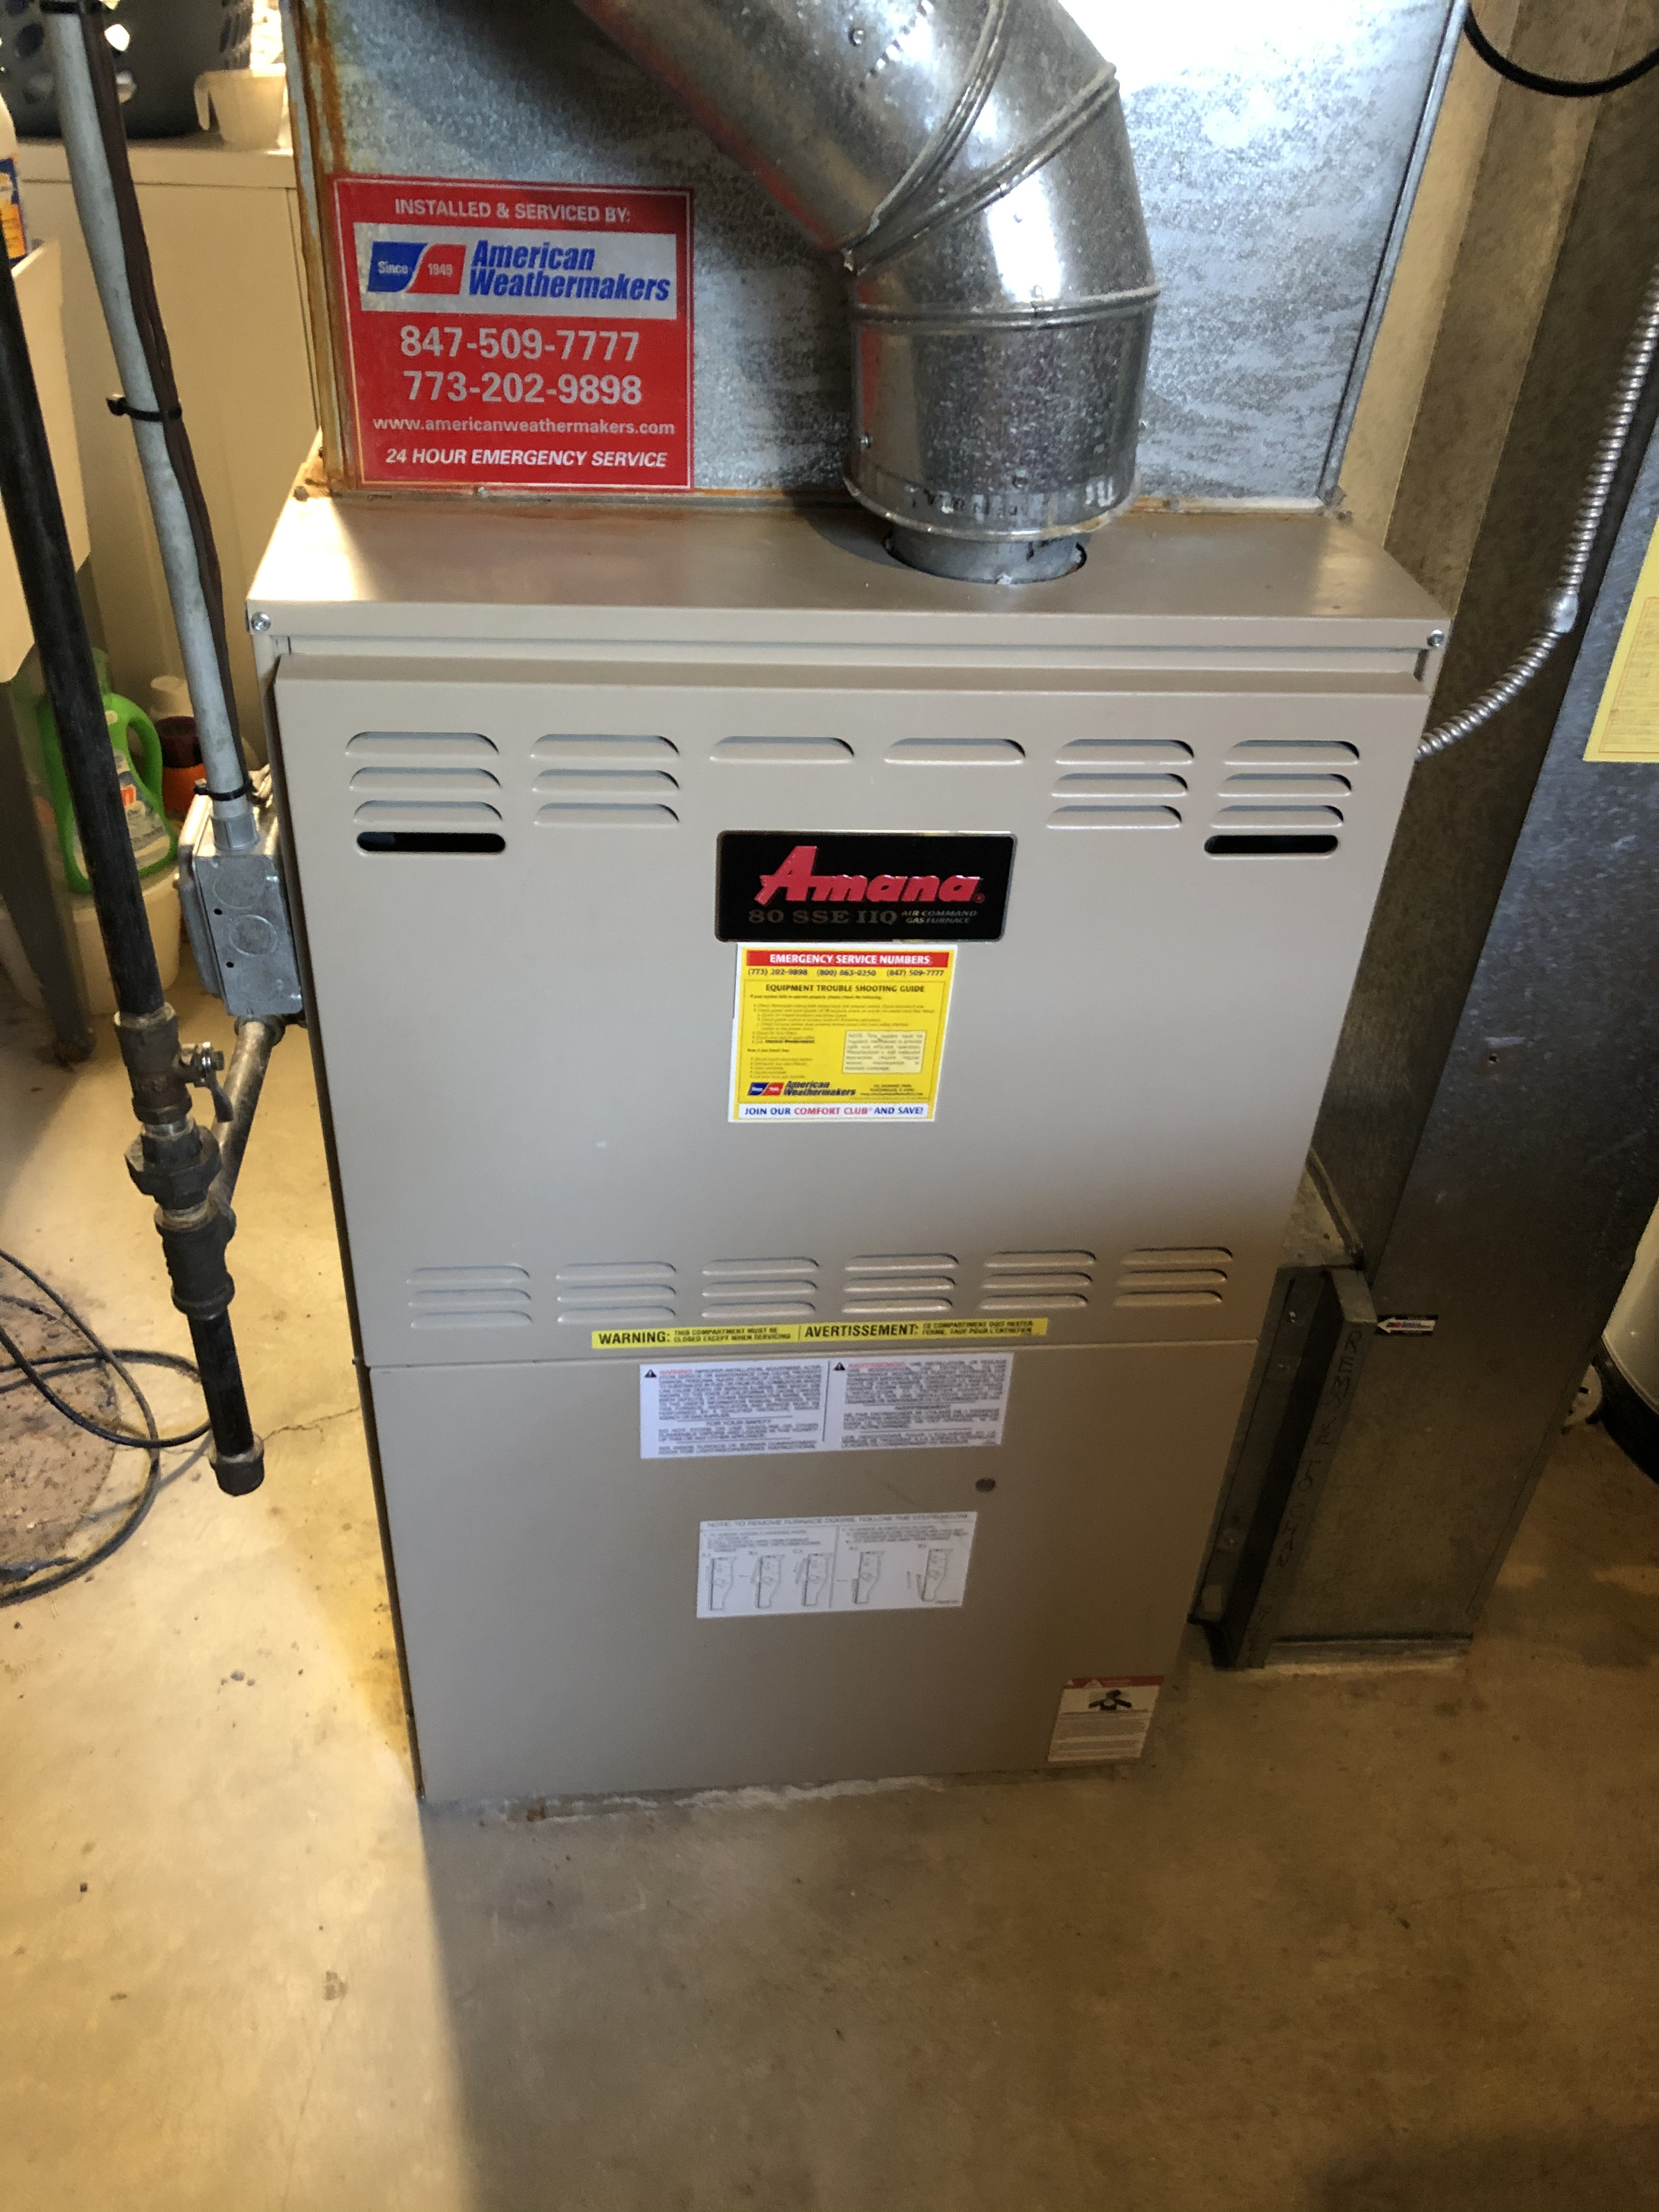 Make sure your Amana furnace is operating properly this winter. Call American Weathermakers today.